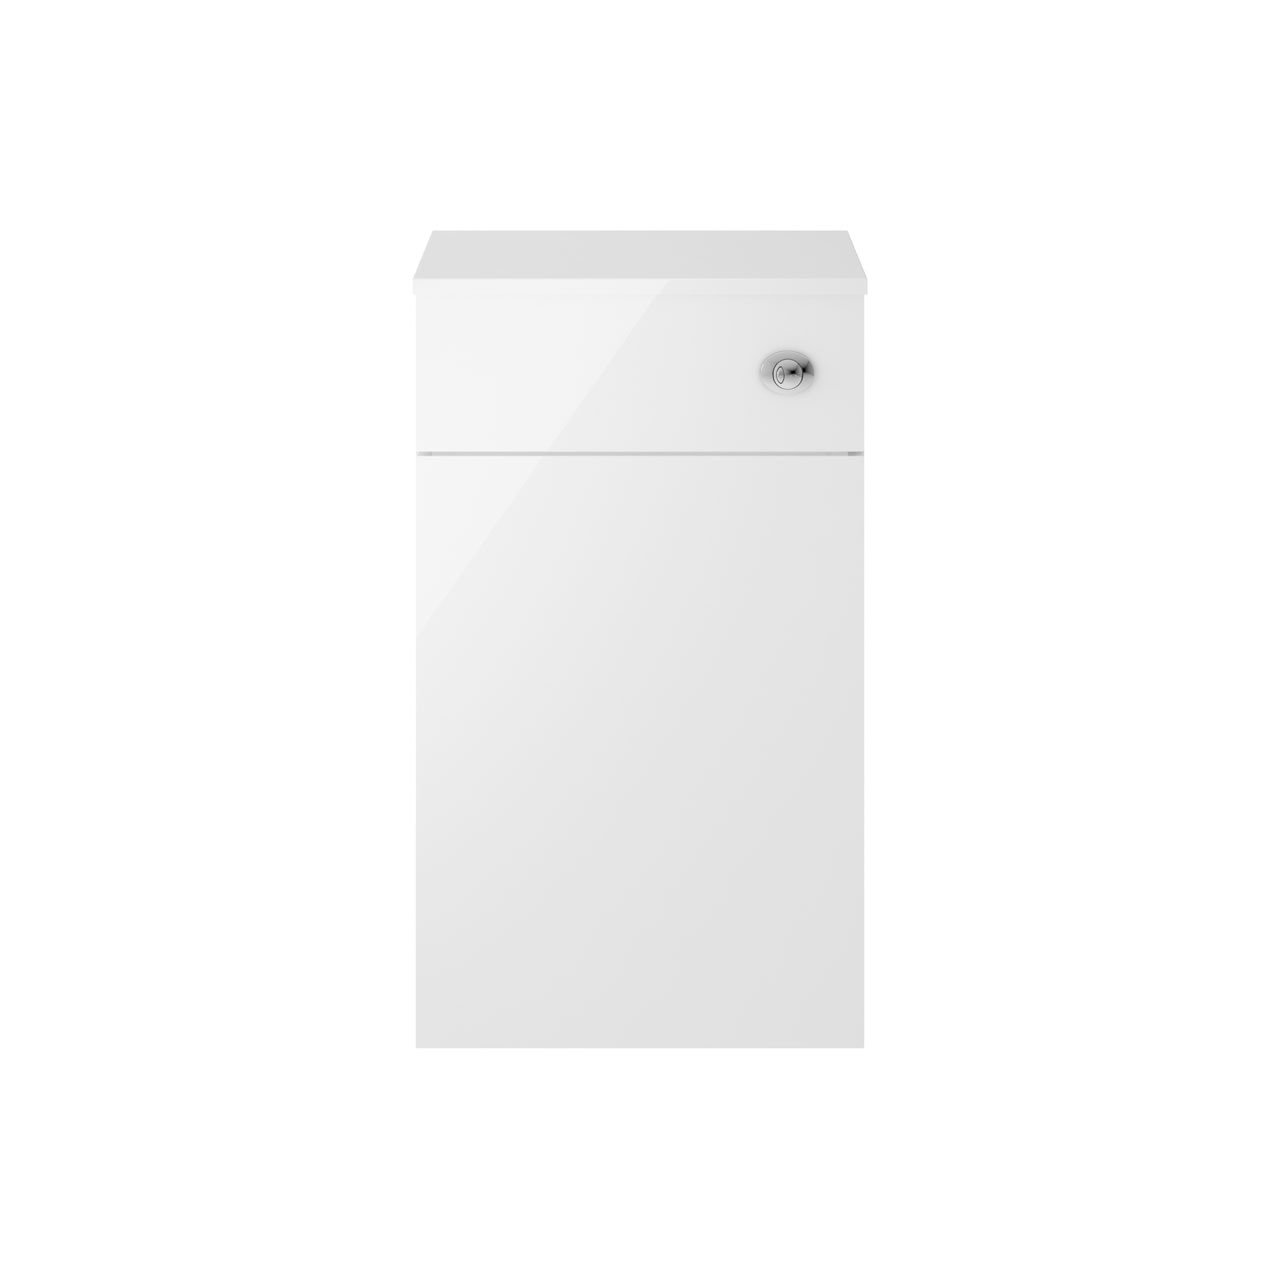 Premier Athena Gloss White 500mm Toilet Unit - MOE142